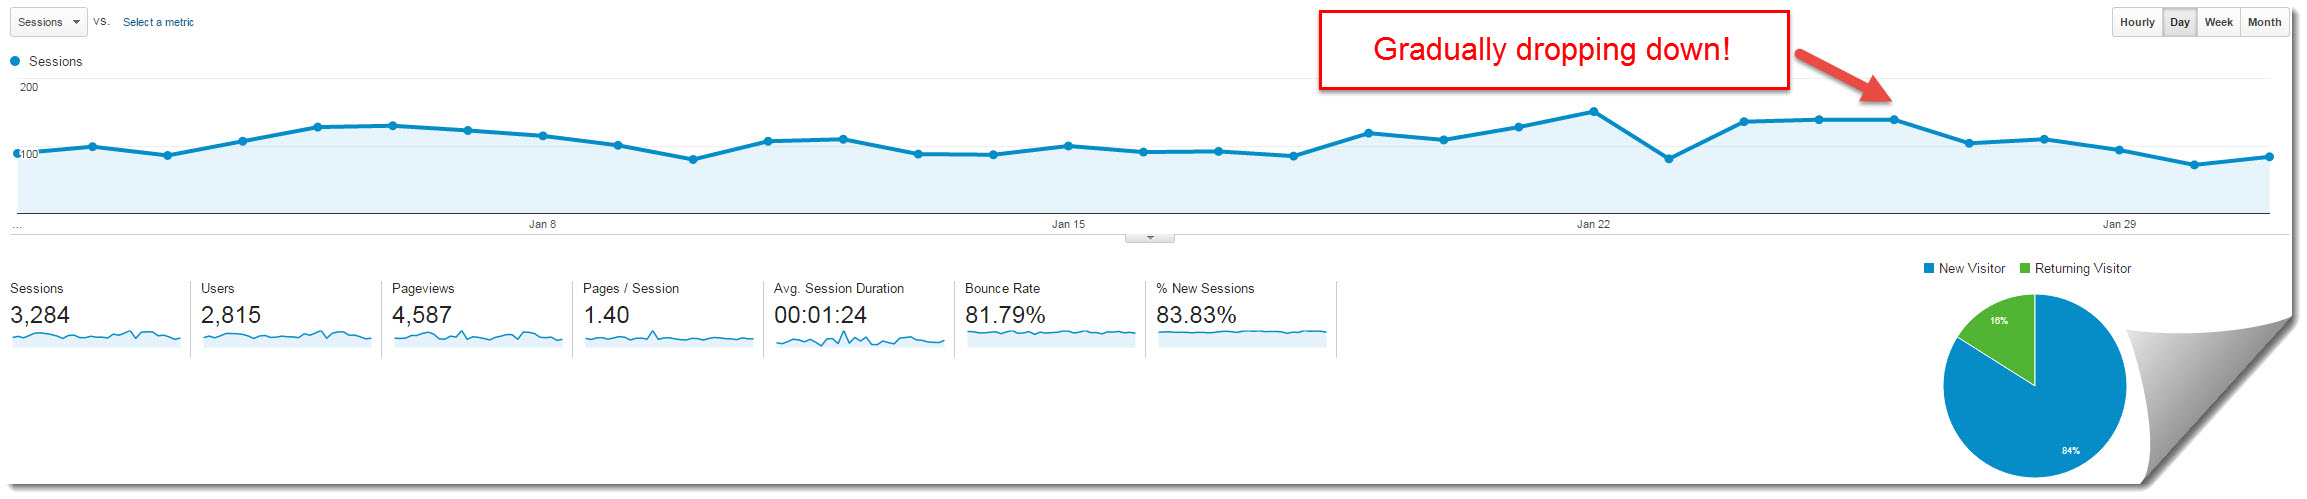 google analytics for my internet quest January 2016